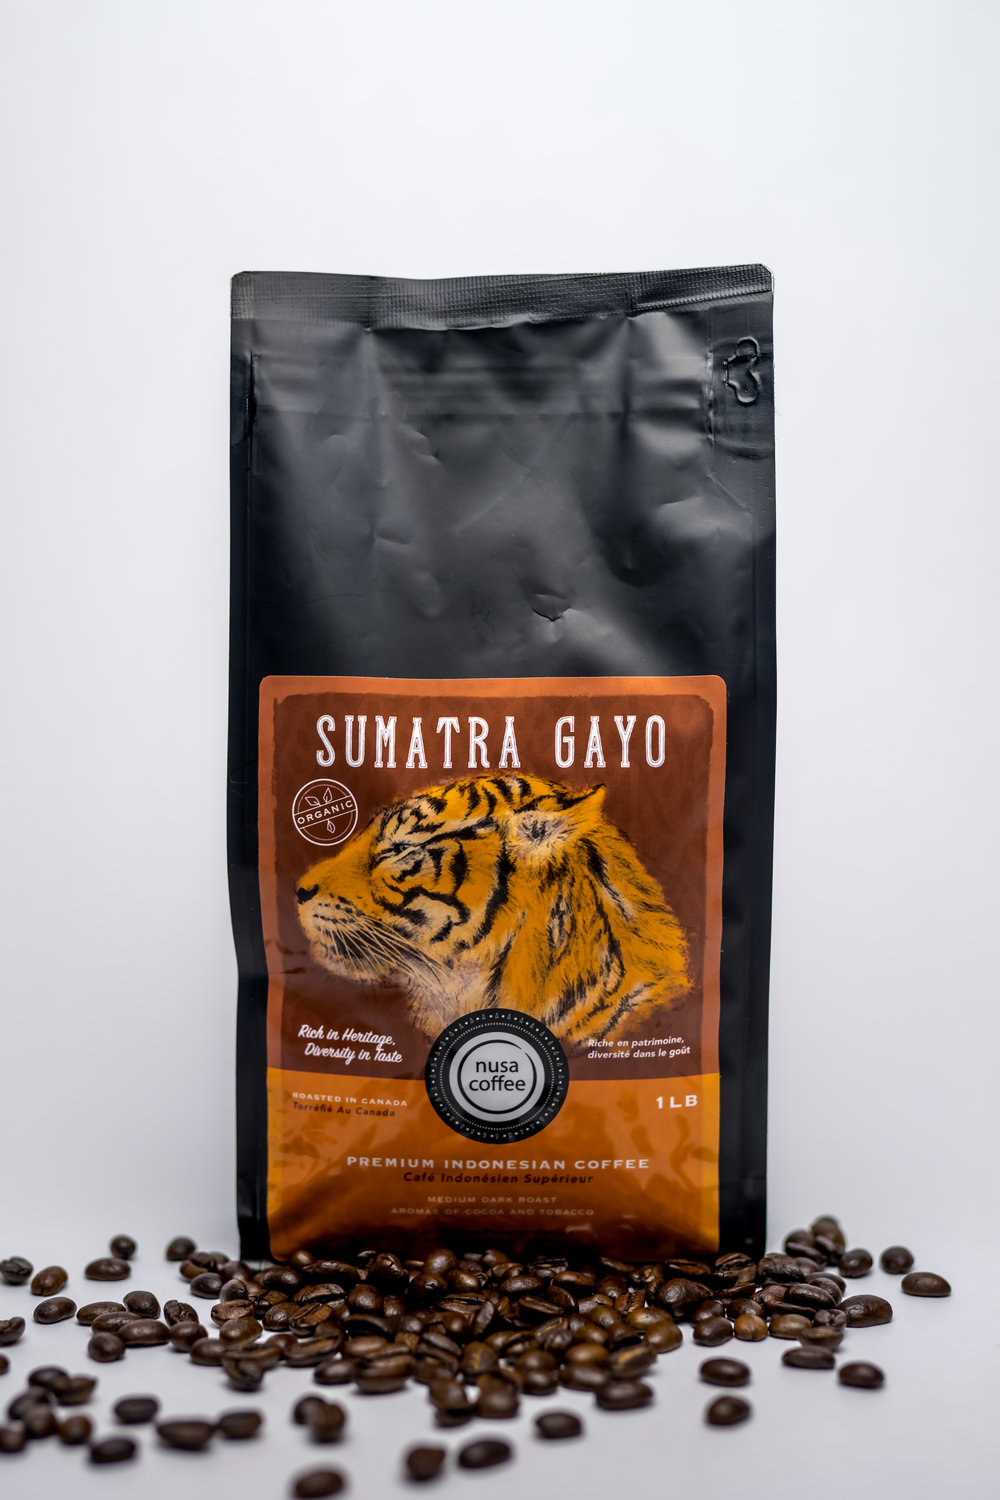 Sumatra Gayo - Roasting Profile: Medium - this allows the emergence of both roasted and green beans flavours.Origin: Gayo Highlands in Takengon, Central Aceh. About 1200 metre elevation, shade-grown coffee plants are among avocado, banana, papaya, and other fruit trees that influence the flavour and aroma of this grade 1 specialty coffee.Processing Method: wet-hulled, resulting in some bright, strong flavour from the high-grown area.